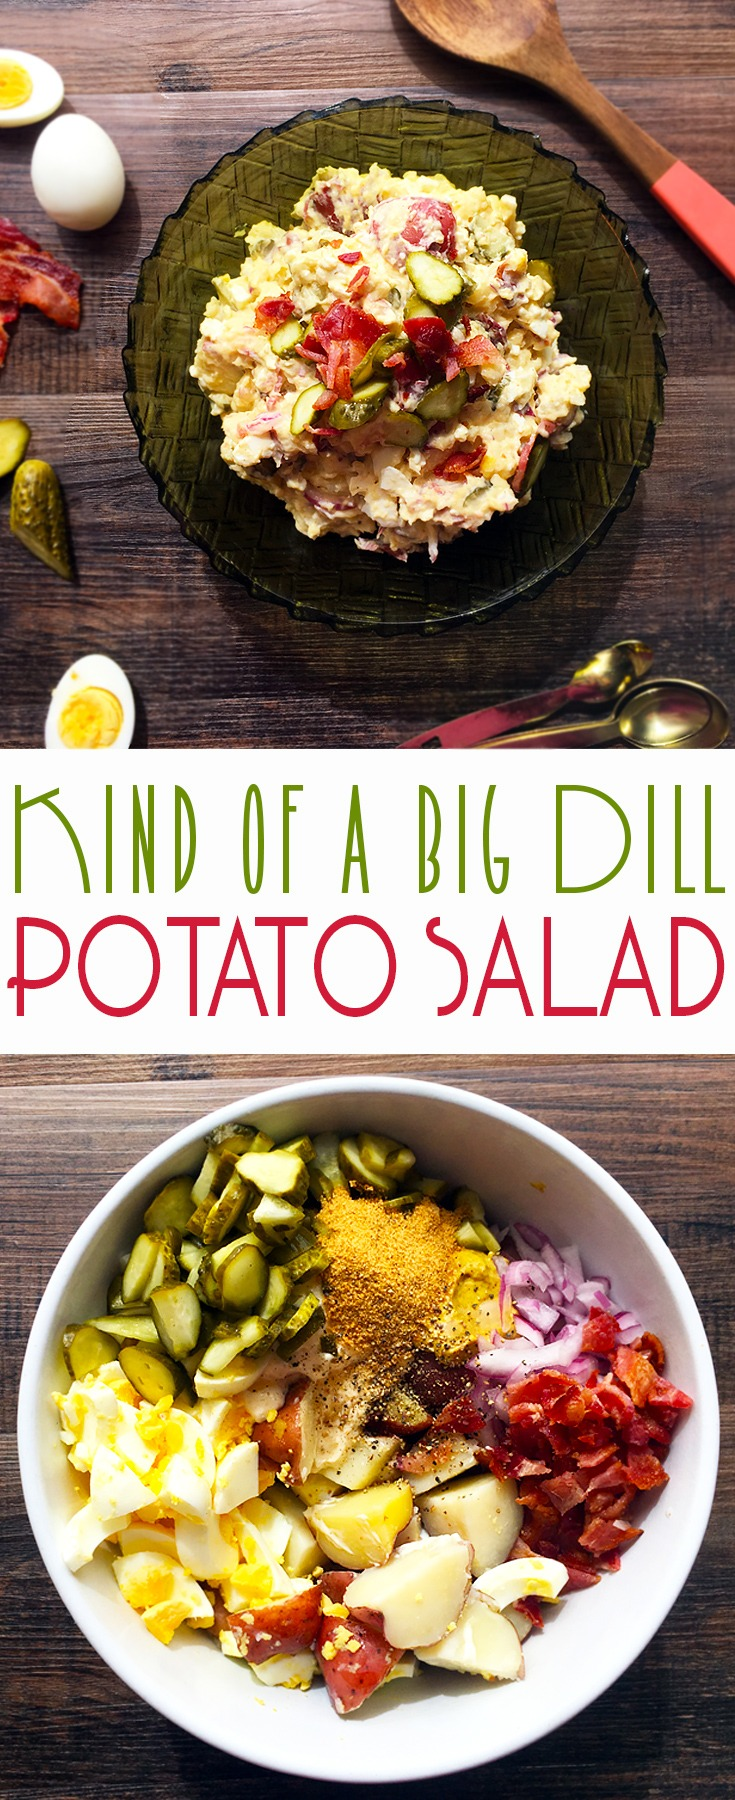 Kind of a Big Dill Potato Salad! Delicious red potatoes, bacon, eggs, and dill pickles! SO FLAVORFUL!